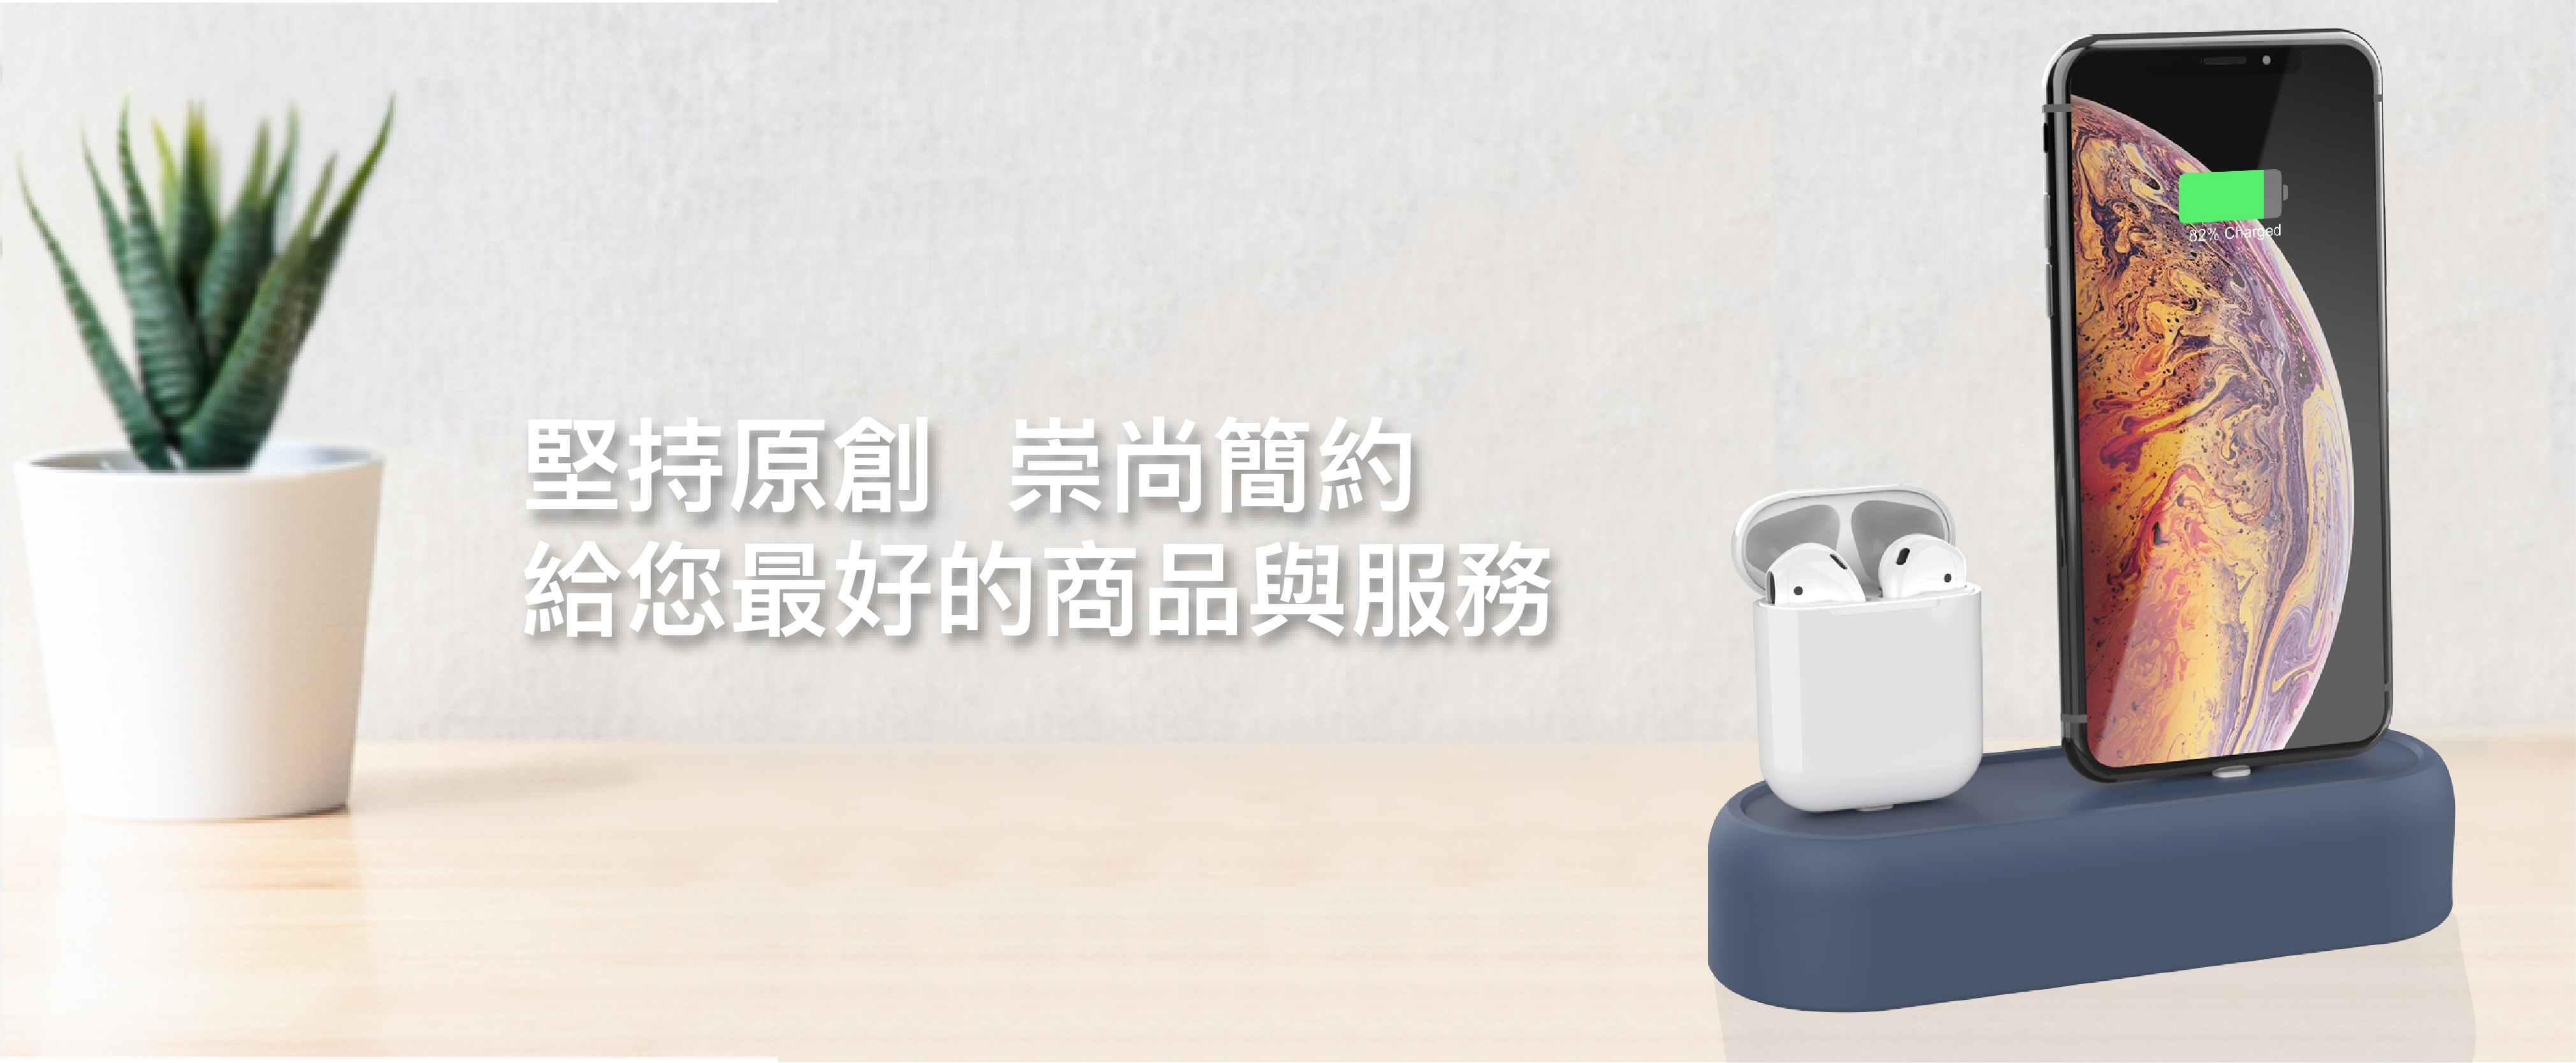 iPhone AirPods 二合一底座